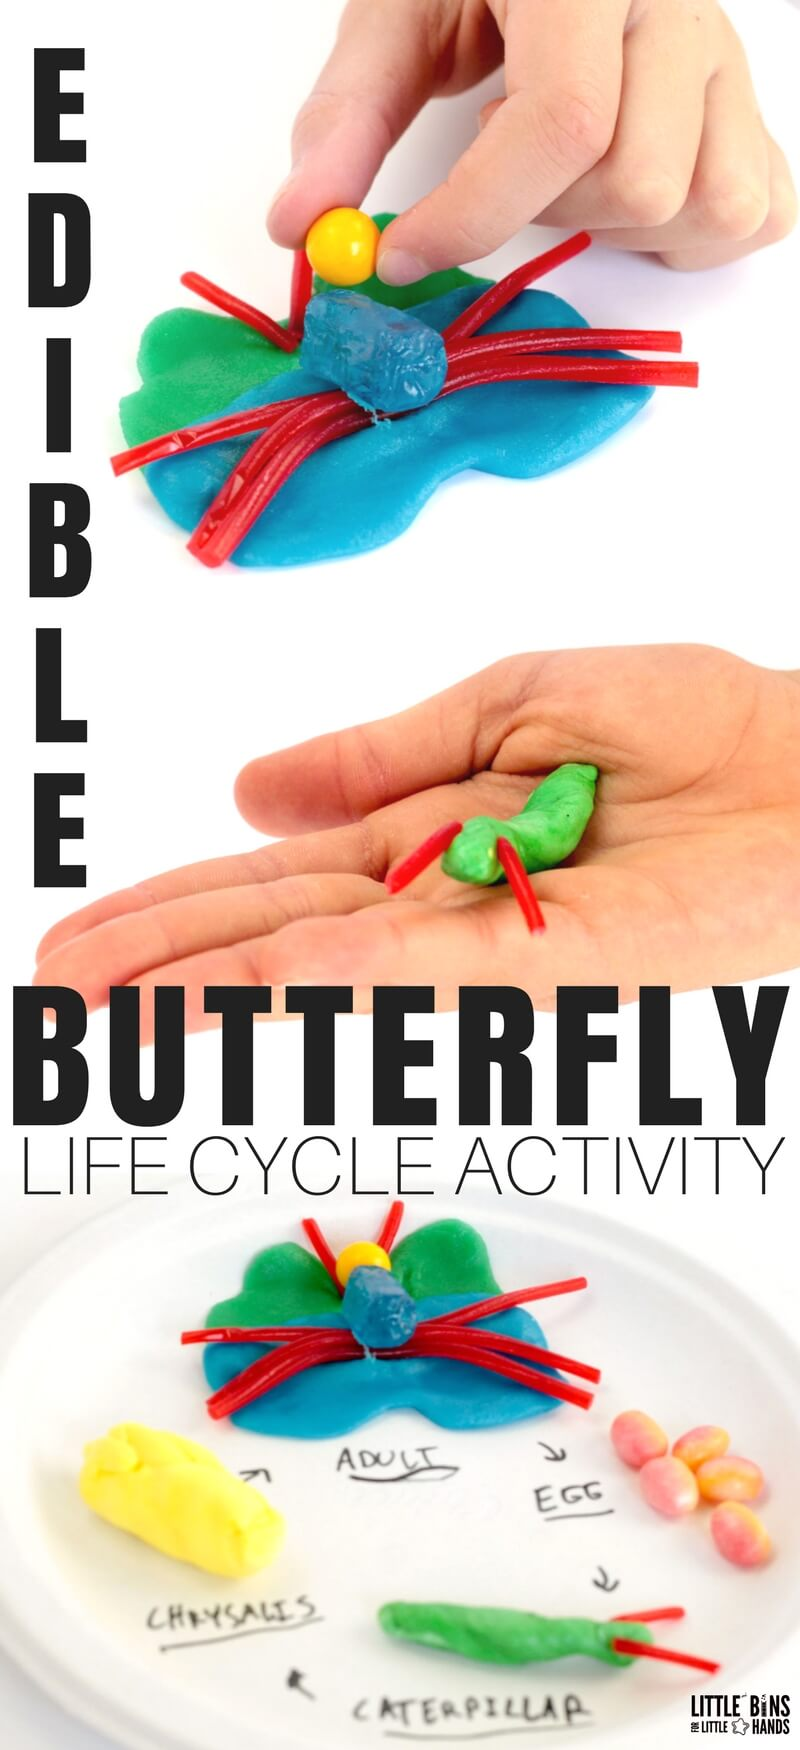 Spring is not only the perfect time to explore butterflies, but it is also the perfect time to make an edible butterfly life cycle. Months of candy filled holidays leave us all with a large pile of candy stored in cabinets. Put some to good use in the name of edible science. This is science and STEM you can eat!